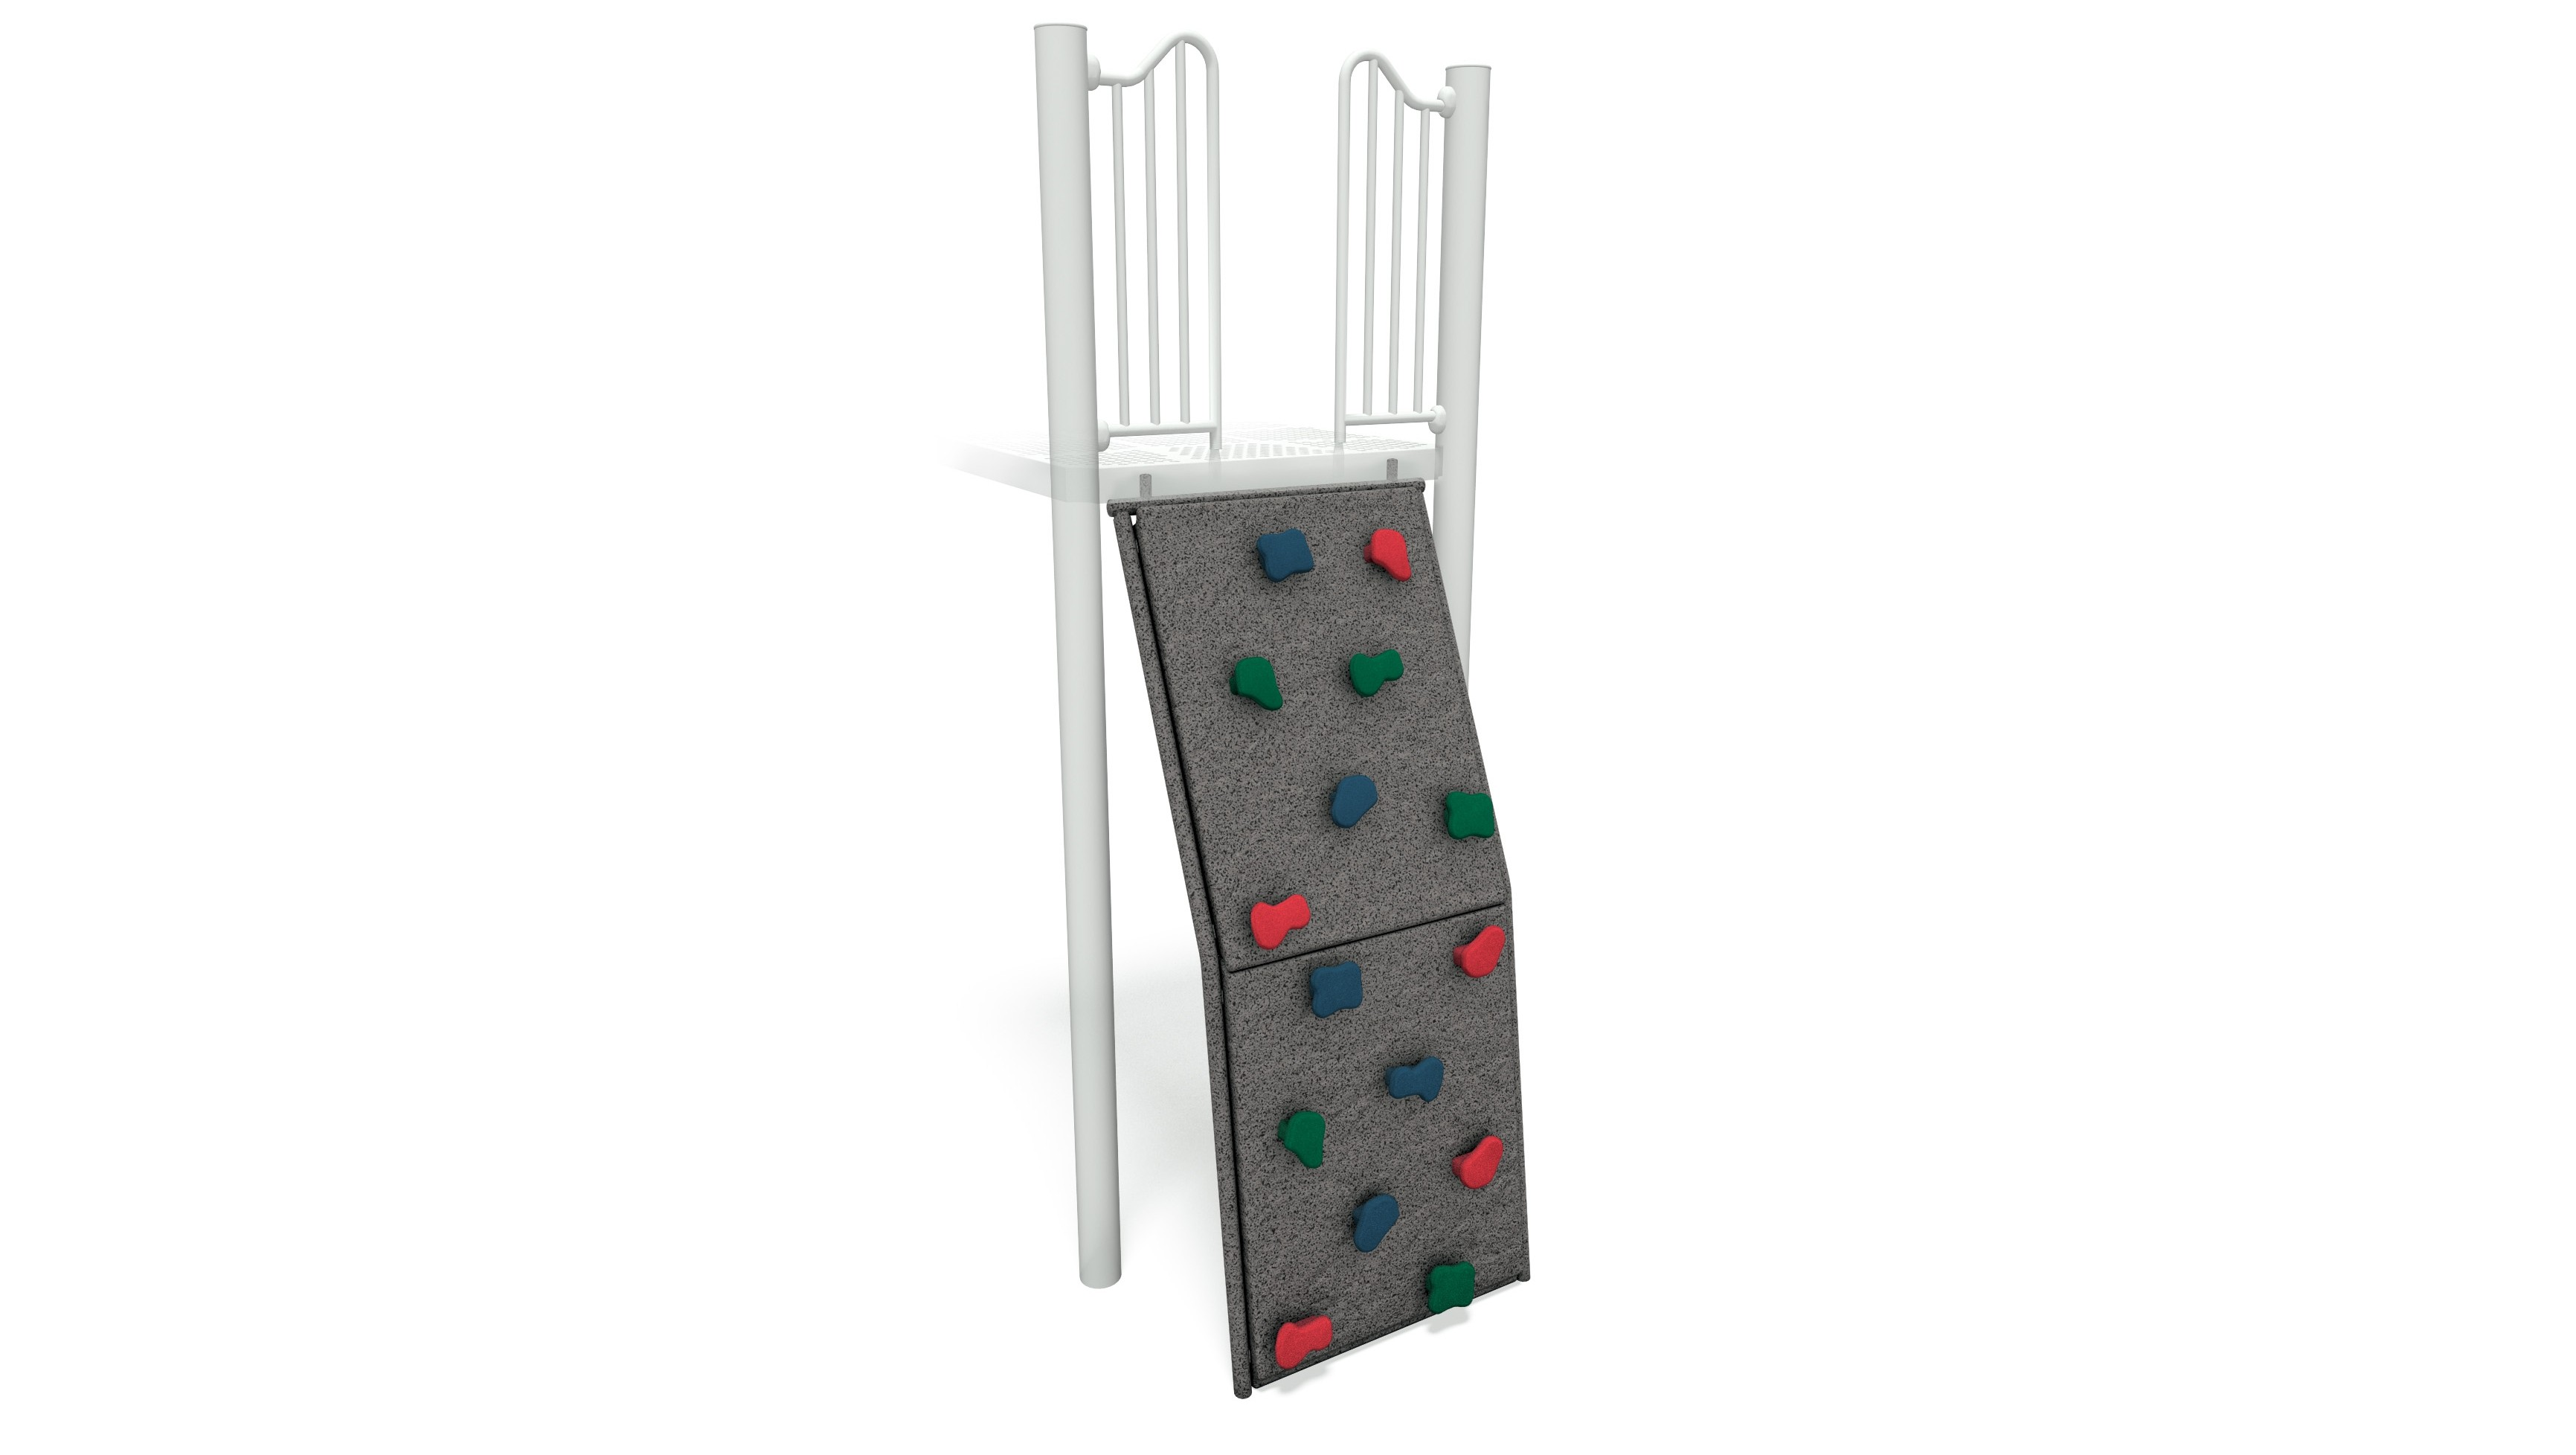 Vert Wall Climber - 8' Deck Height